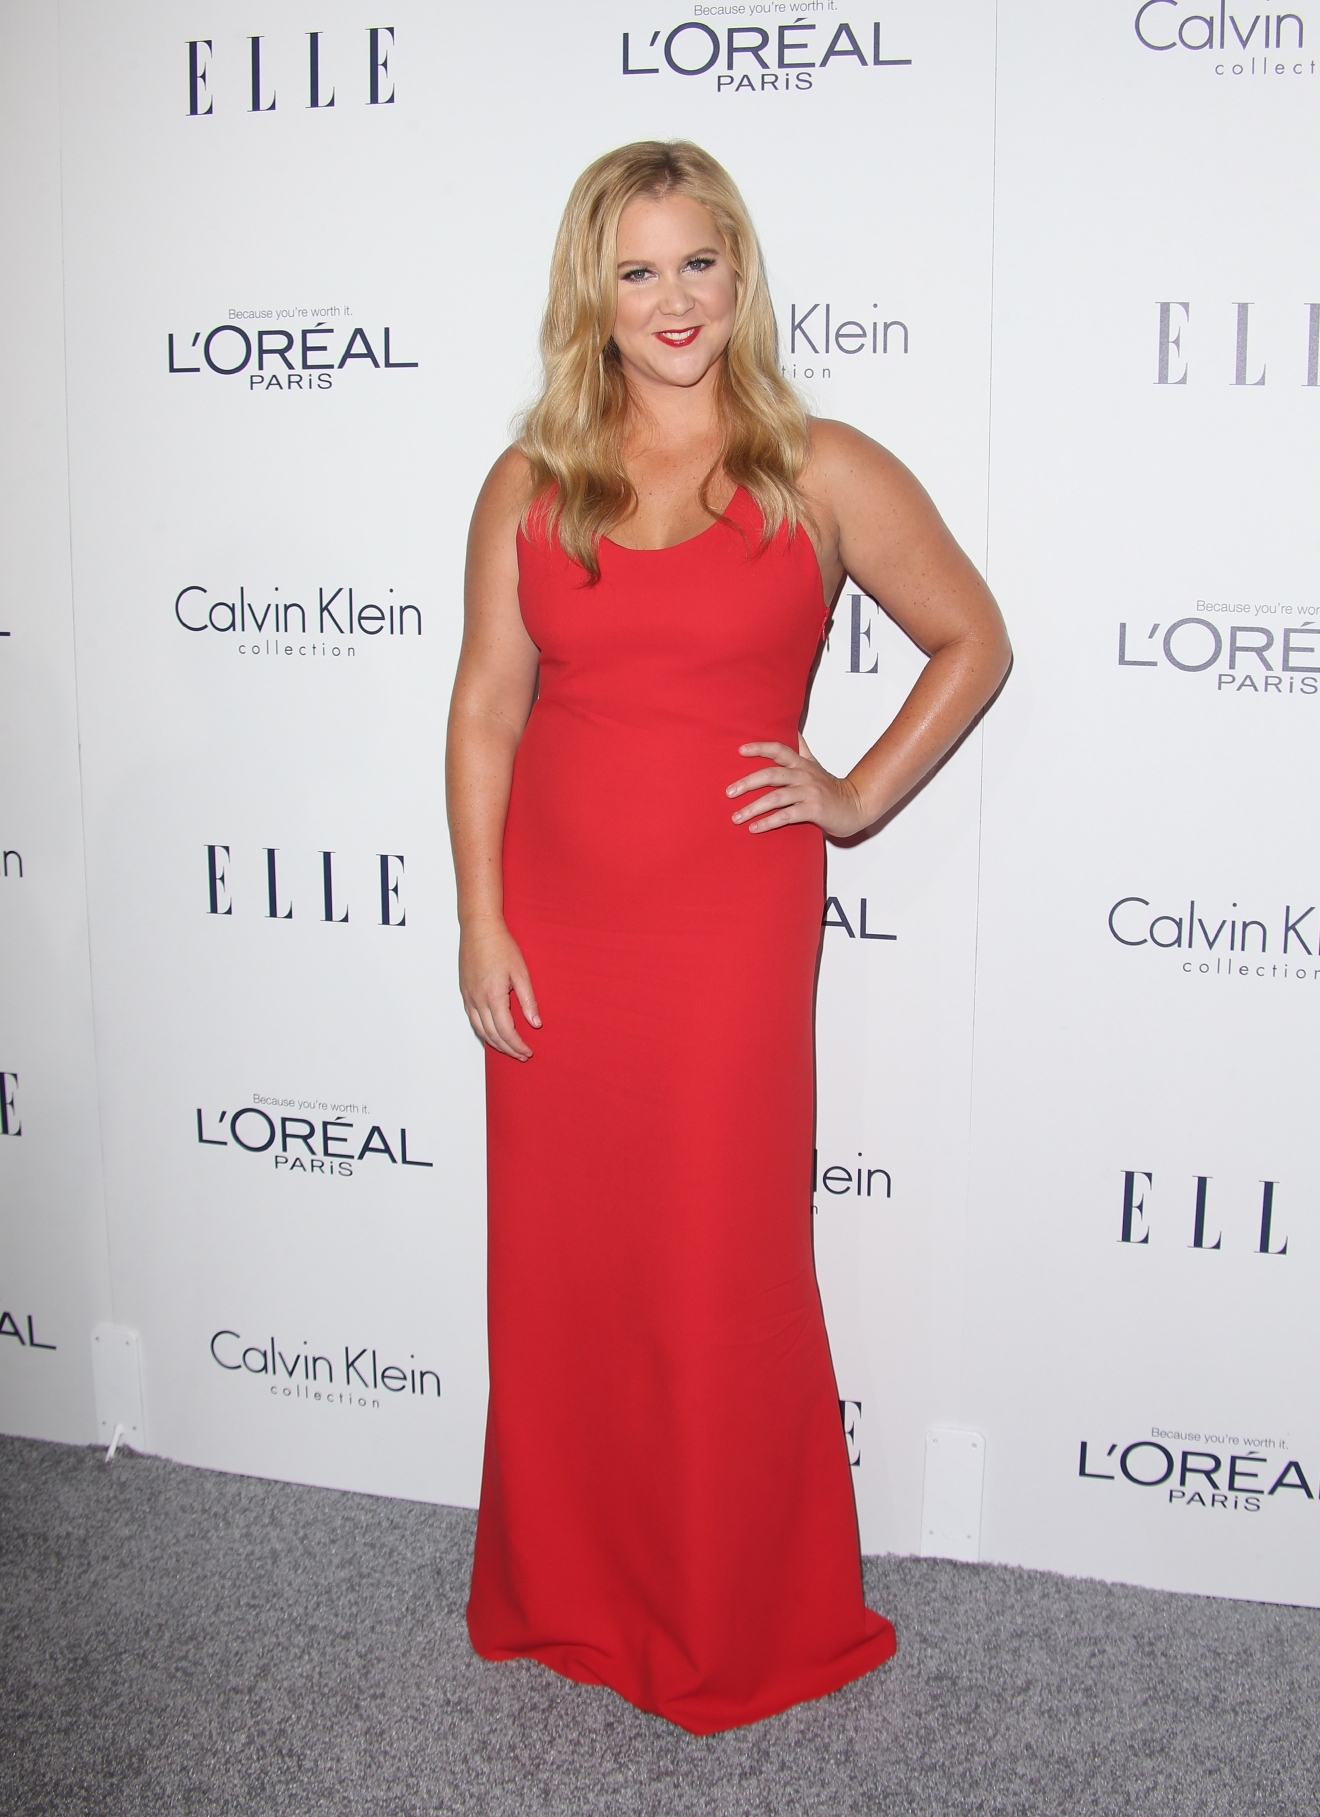 2015 ELLE Women in Hollywood Awards                                    Featuring: Amy Schumer                  Where: Beverly Hills, California, United States                  When: 19 Oct 2015                  Credit: FayesVision/WENN.com